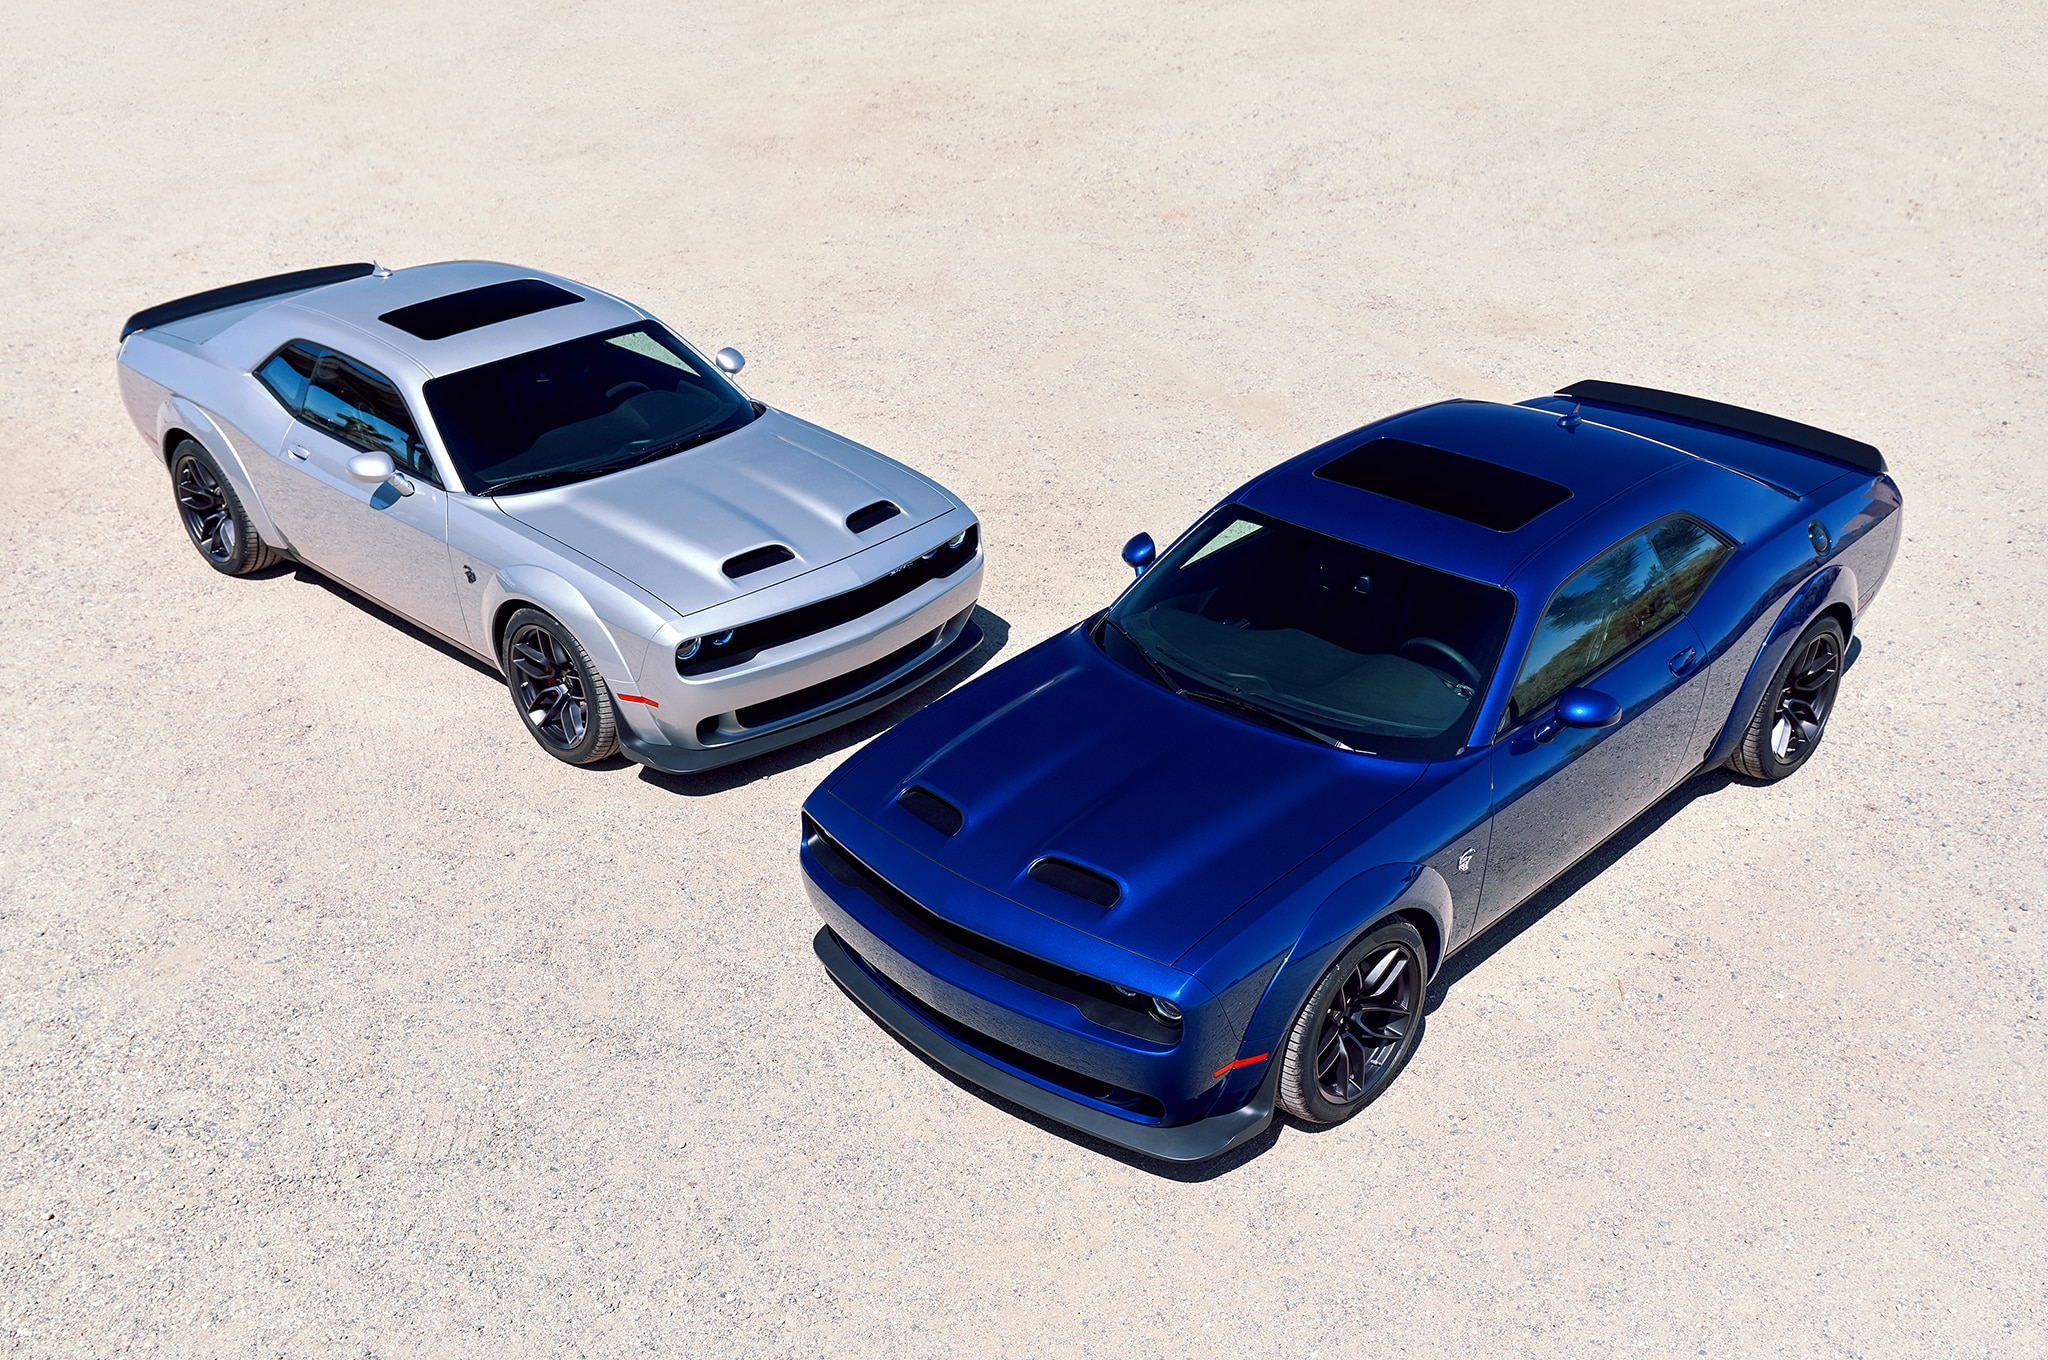 2019 Dodge Challenger Hellcat >> 2019 Dodge Challenger SRT Hellcat Redeye Serves Up 797 Horsepower for $72,745 | Automobile Magazine